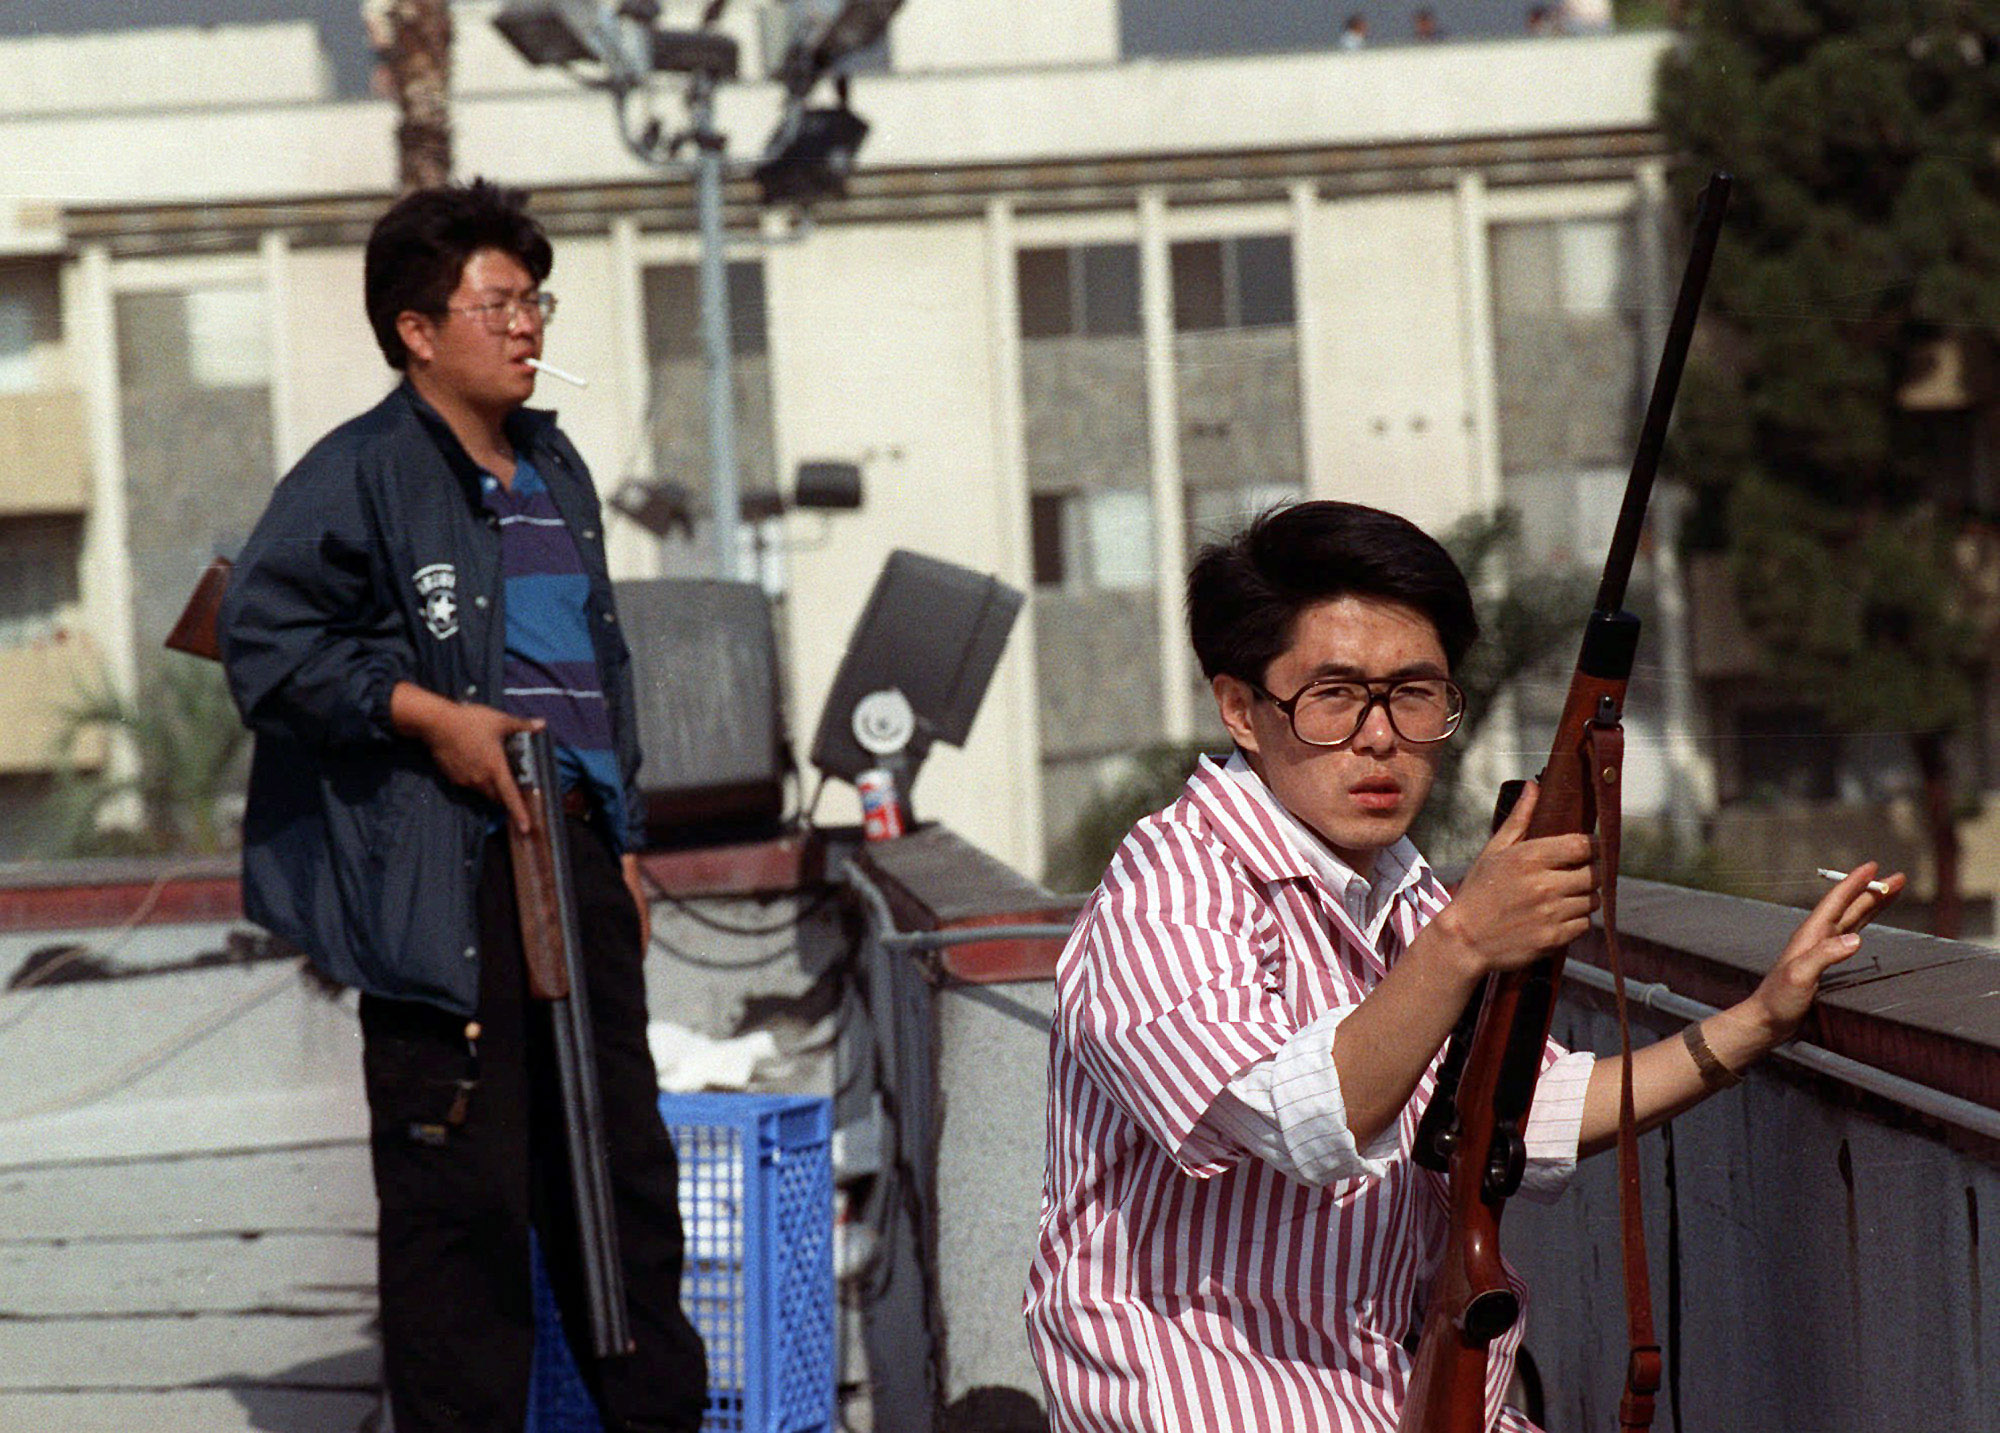 ** ADVANCE FOR FRIDAY, APRIL 26 AND THEREAFTER--FILE ** Two Korean men stand on the roof of a grocery store with rifles to prevent looters from entering the store in this file photo taken April 30, 1992, in Los Angeles. On April 29, 1992, four white police officers were declared innocent in the beating of black motorist Rodney King, and Los Angeles erupted in the deadliest riots of the century. Three days later, 55 people were dead and more than 2,000 injured. Fires and looting had destroyed $1 billionworth of property. (AP Photo/John Gaps III)